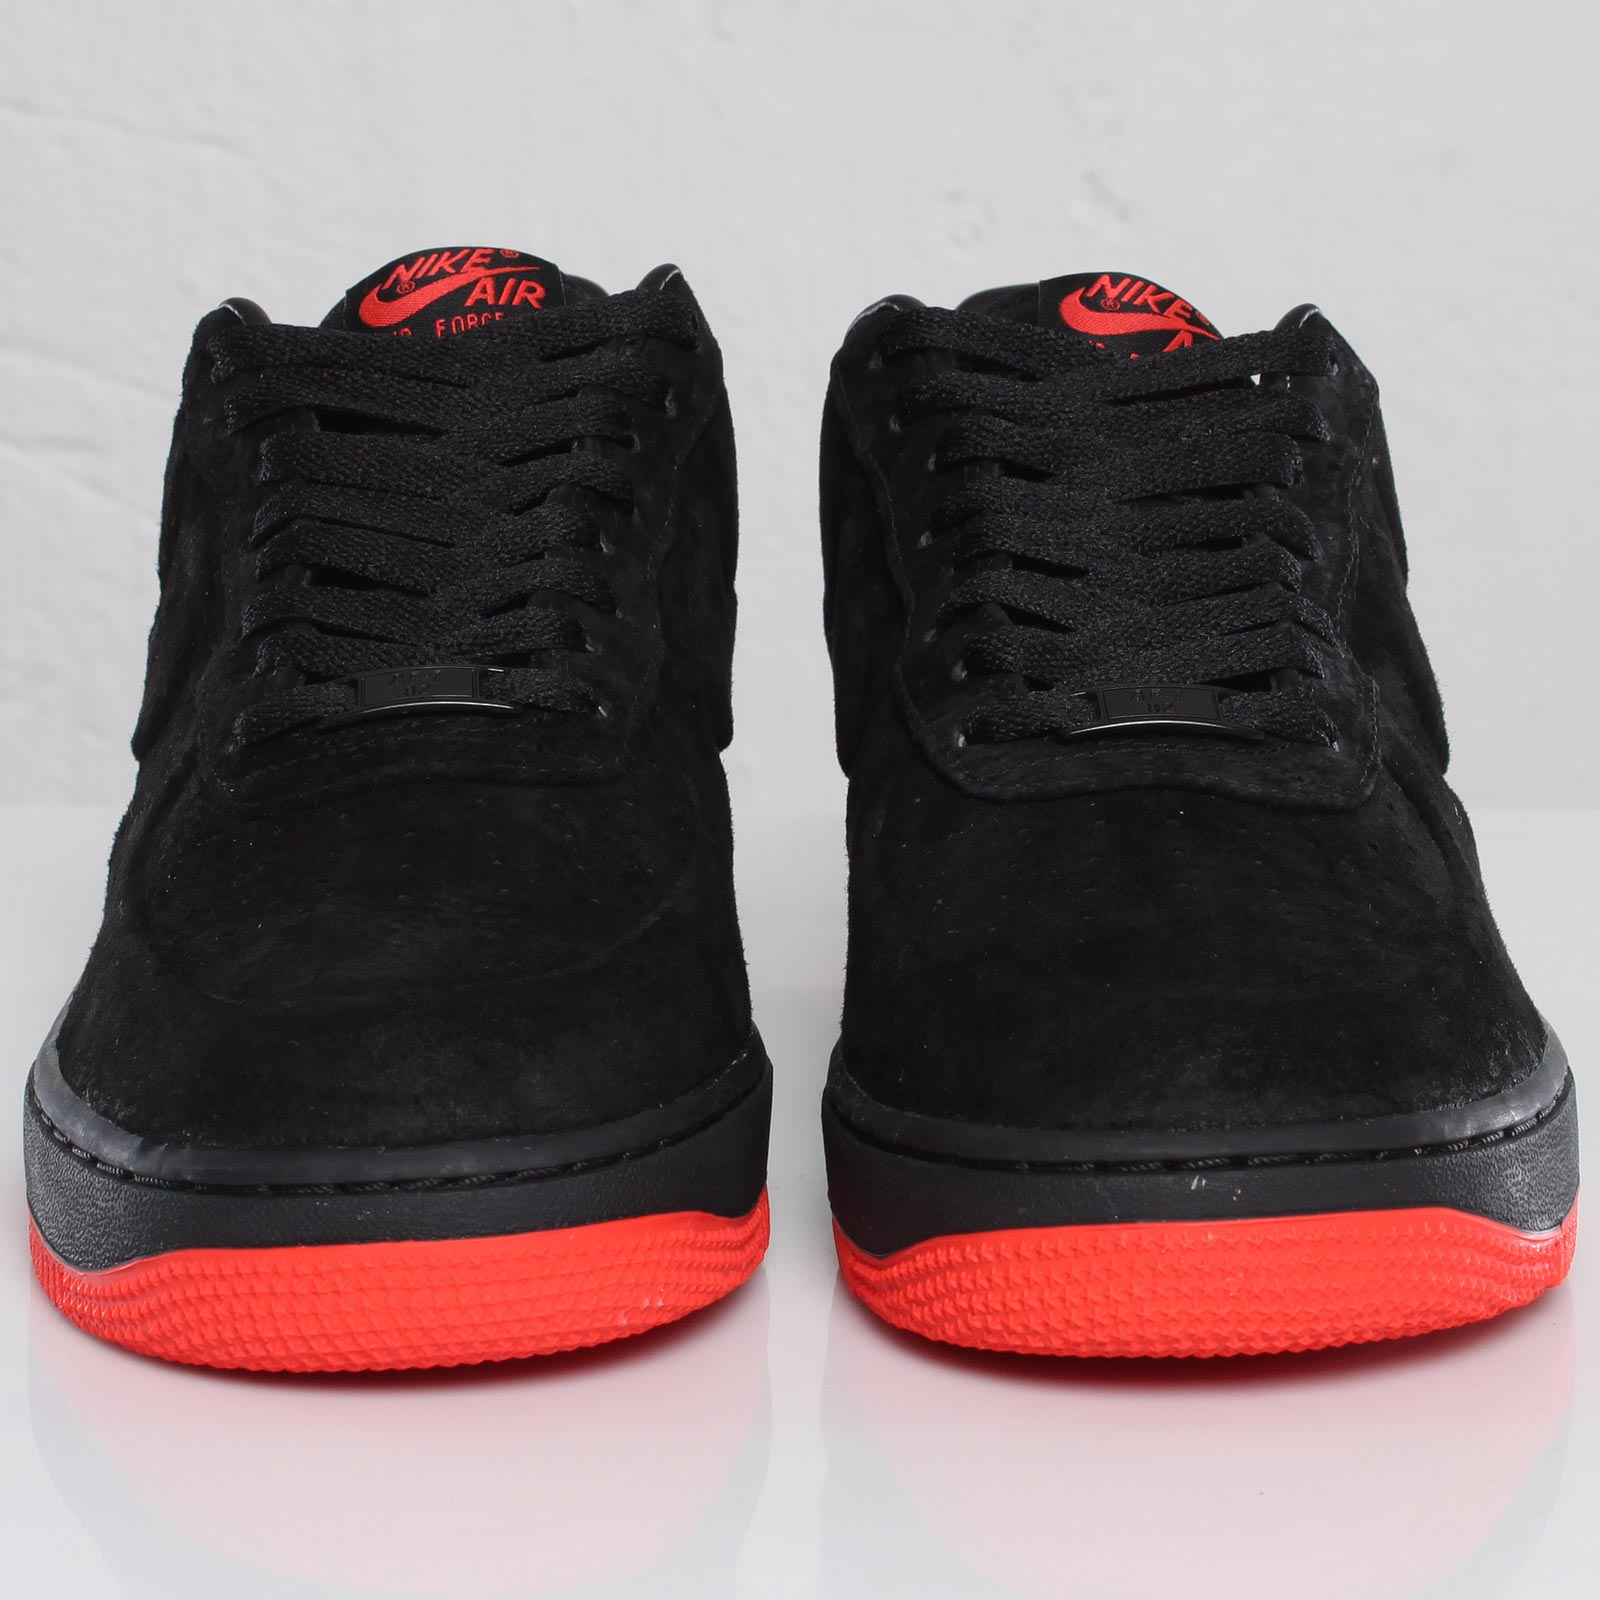 Air Force 1 Nike Red And Black